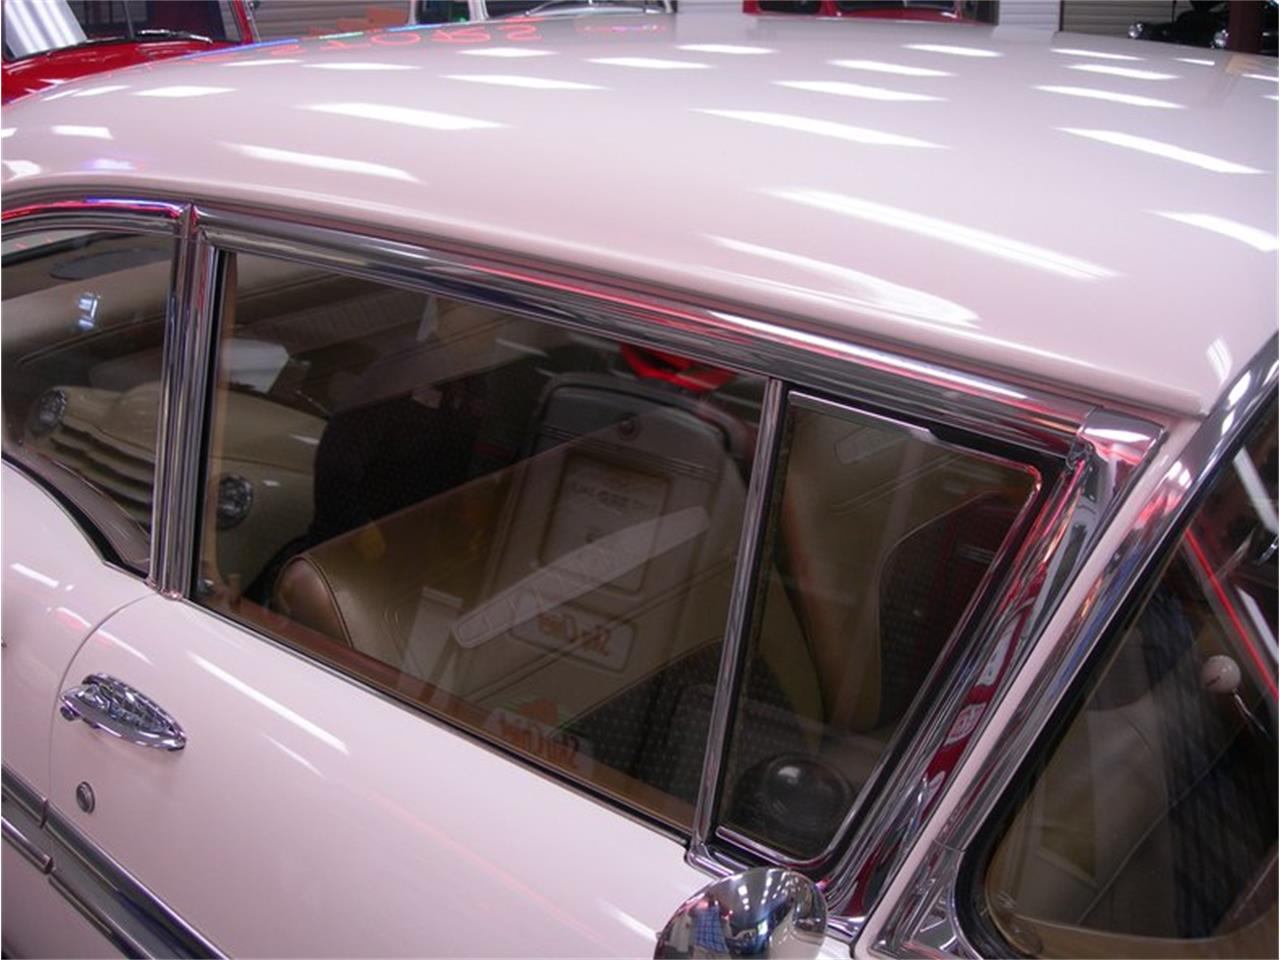 1958 Chevrolet Biscayne for sale in Dothan, AL – photo 27